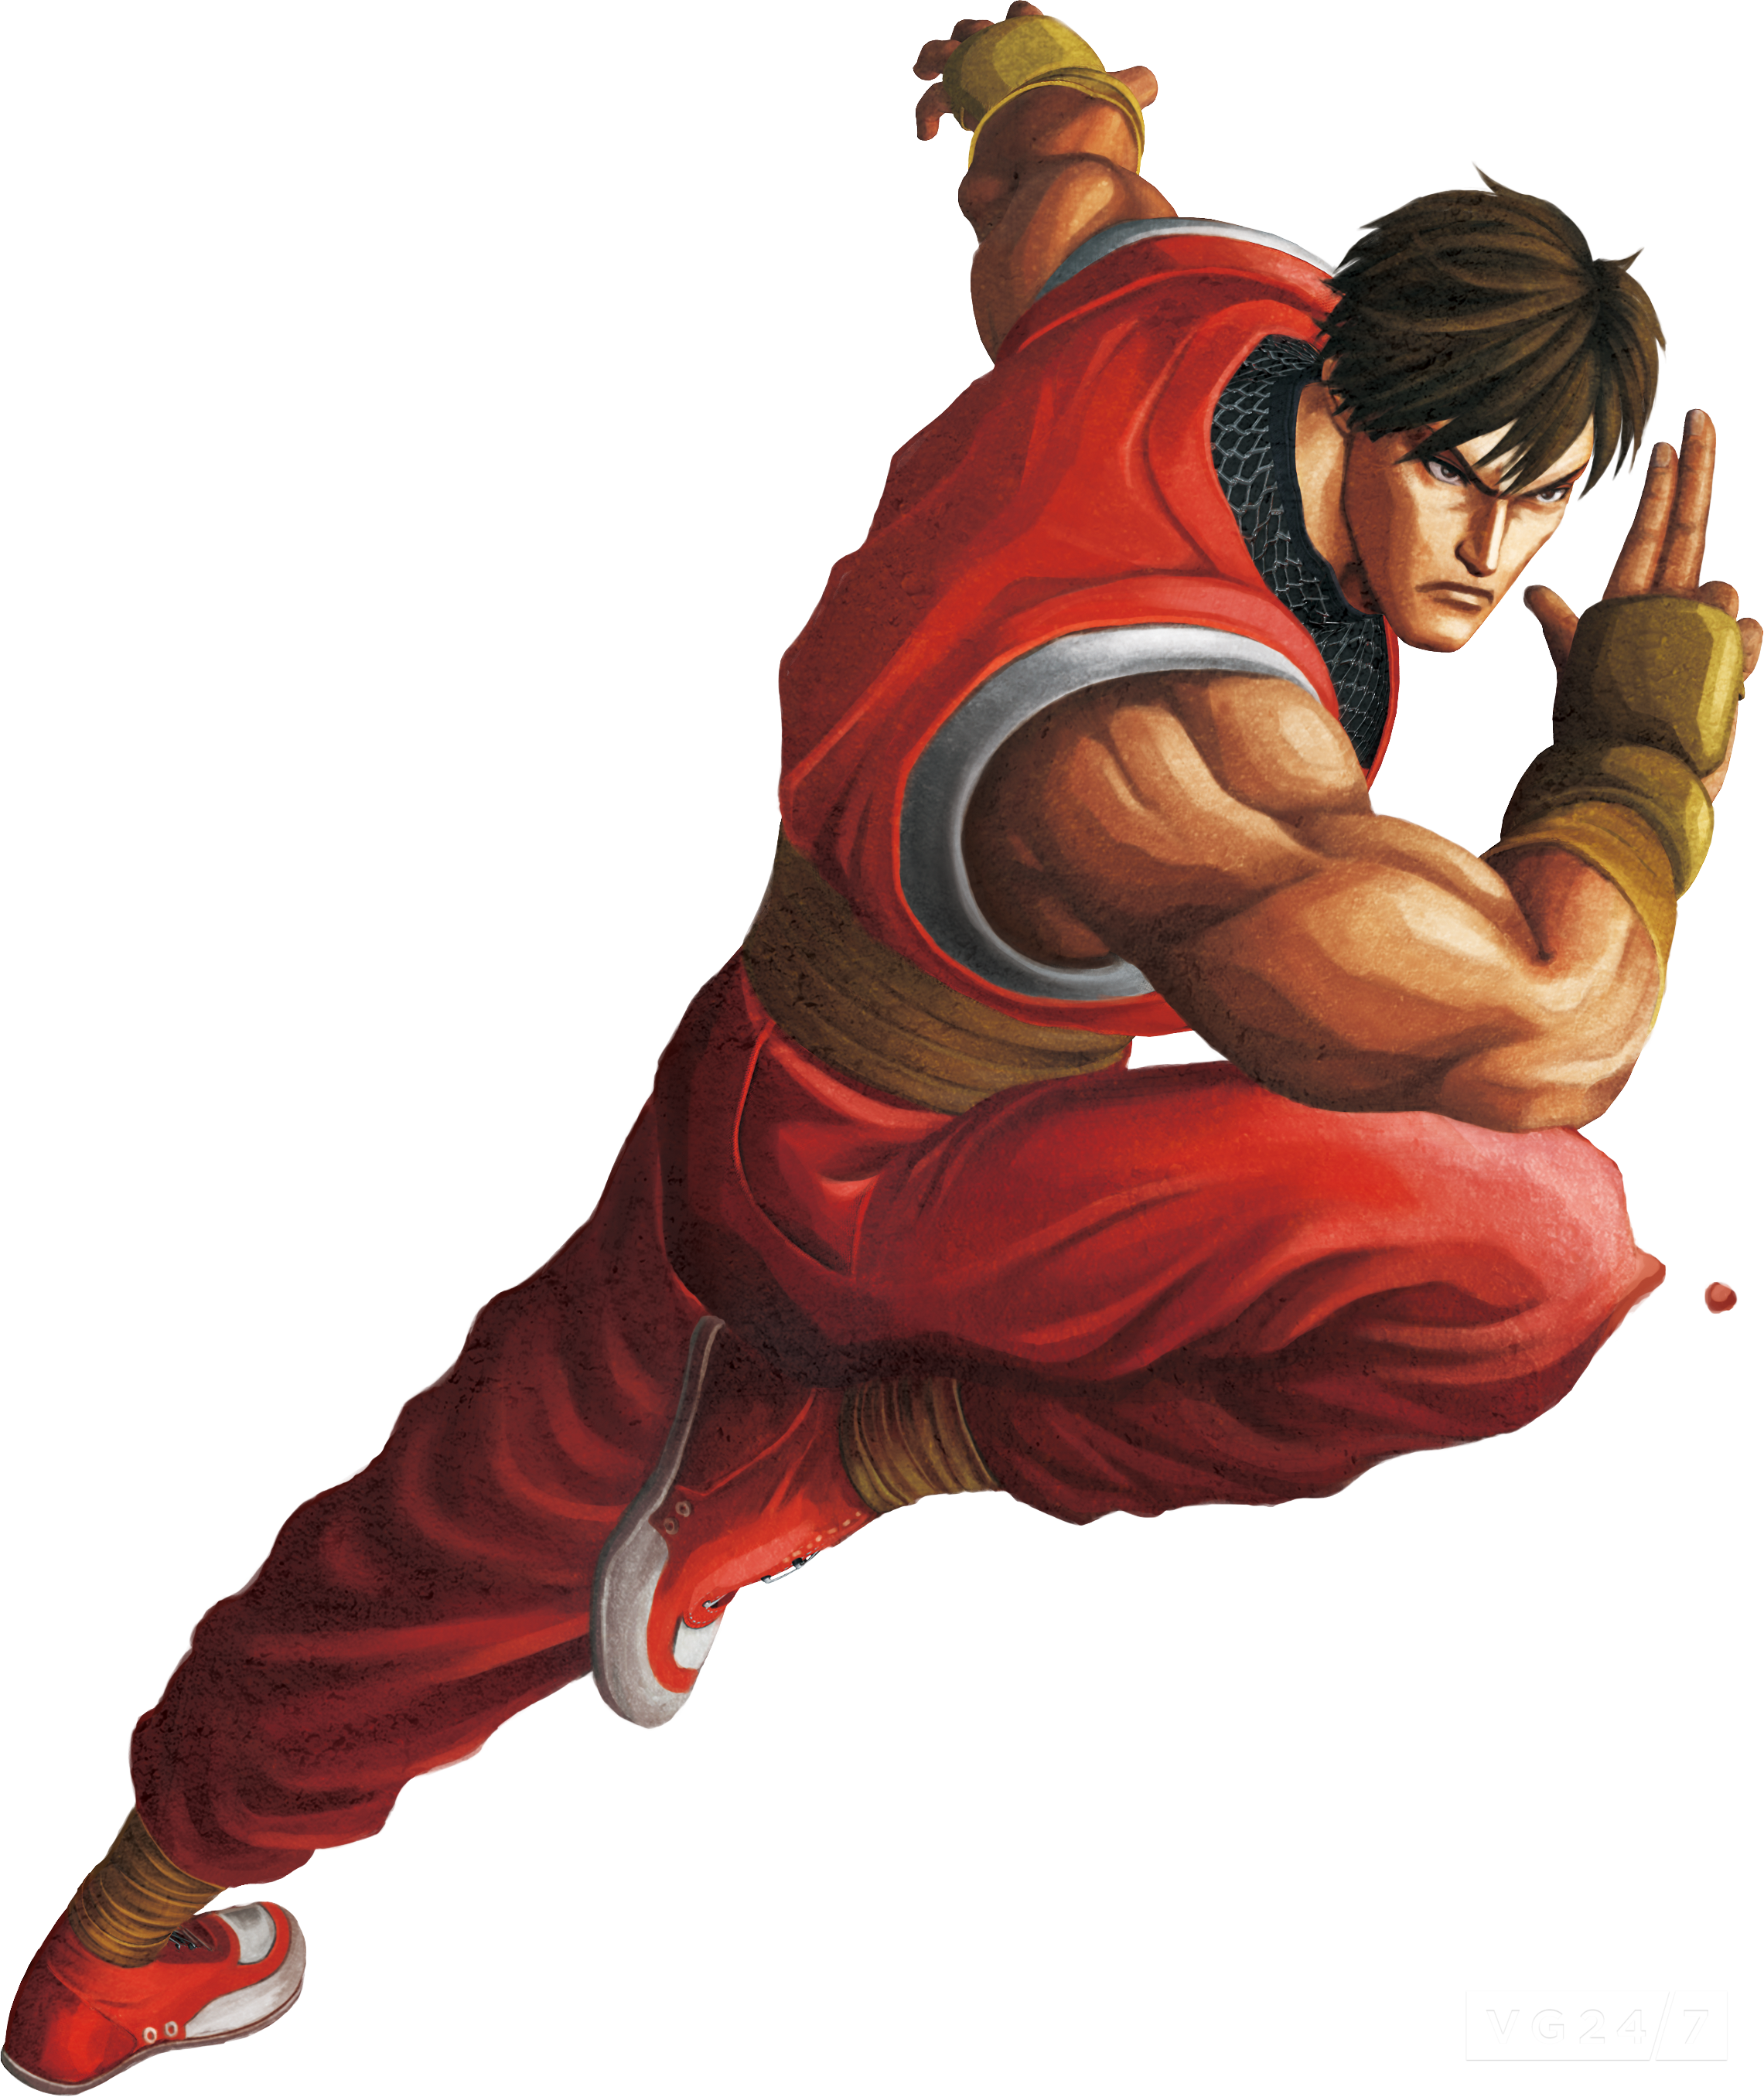 Street fighter x png. Tekken to feature ps